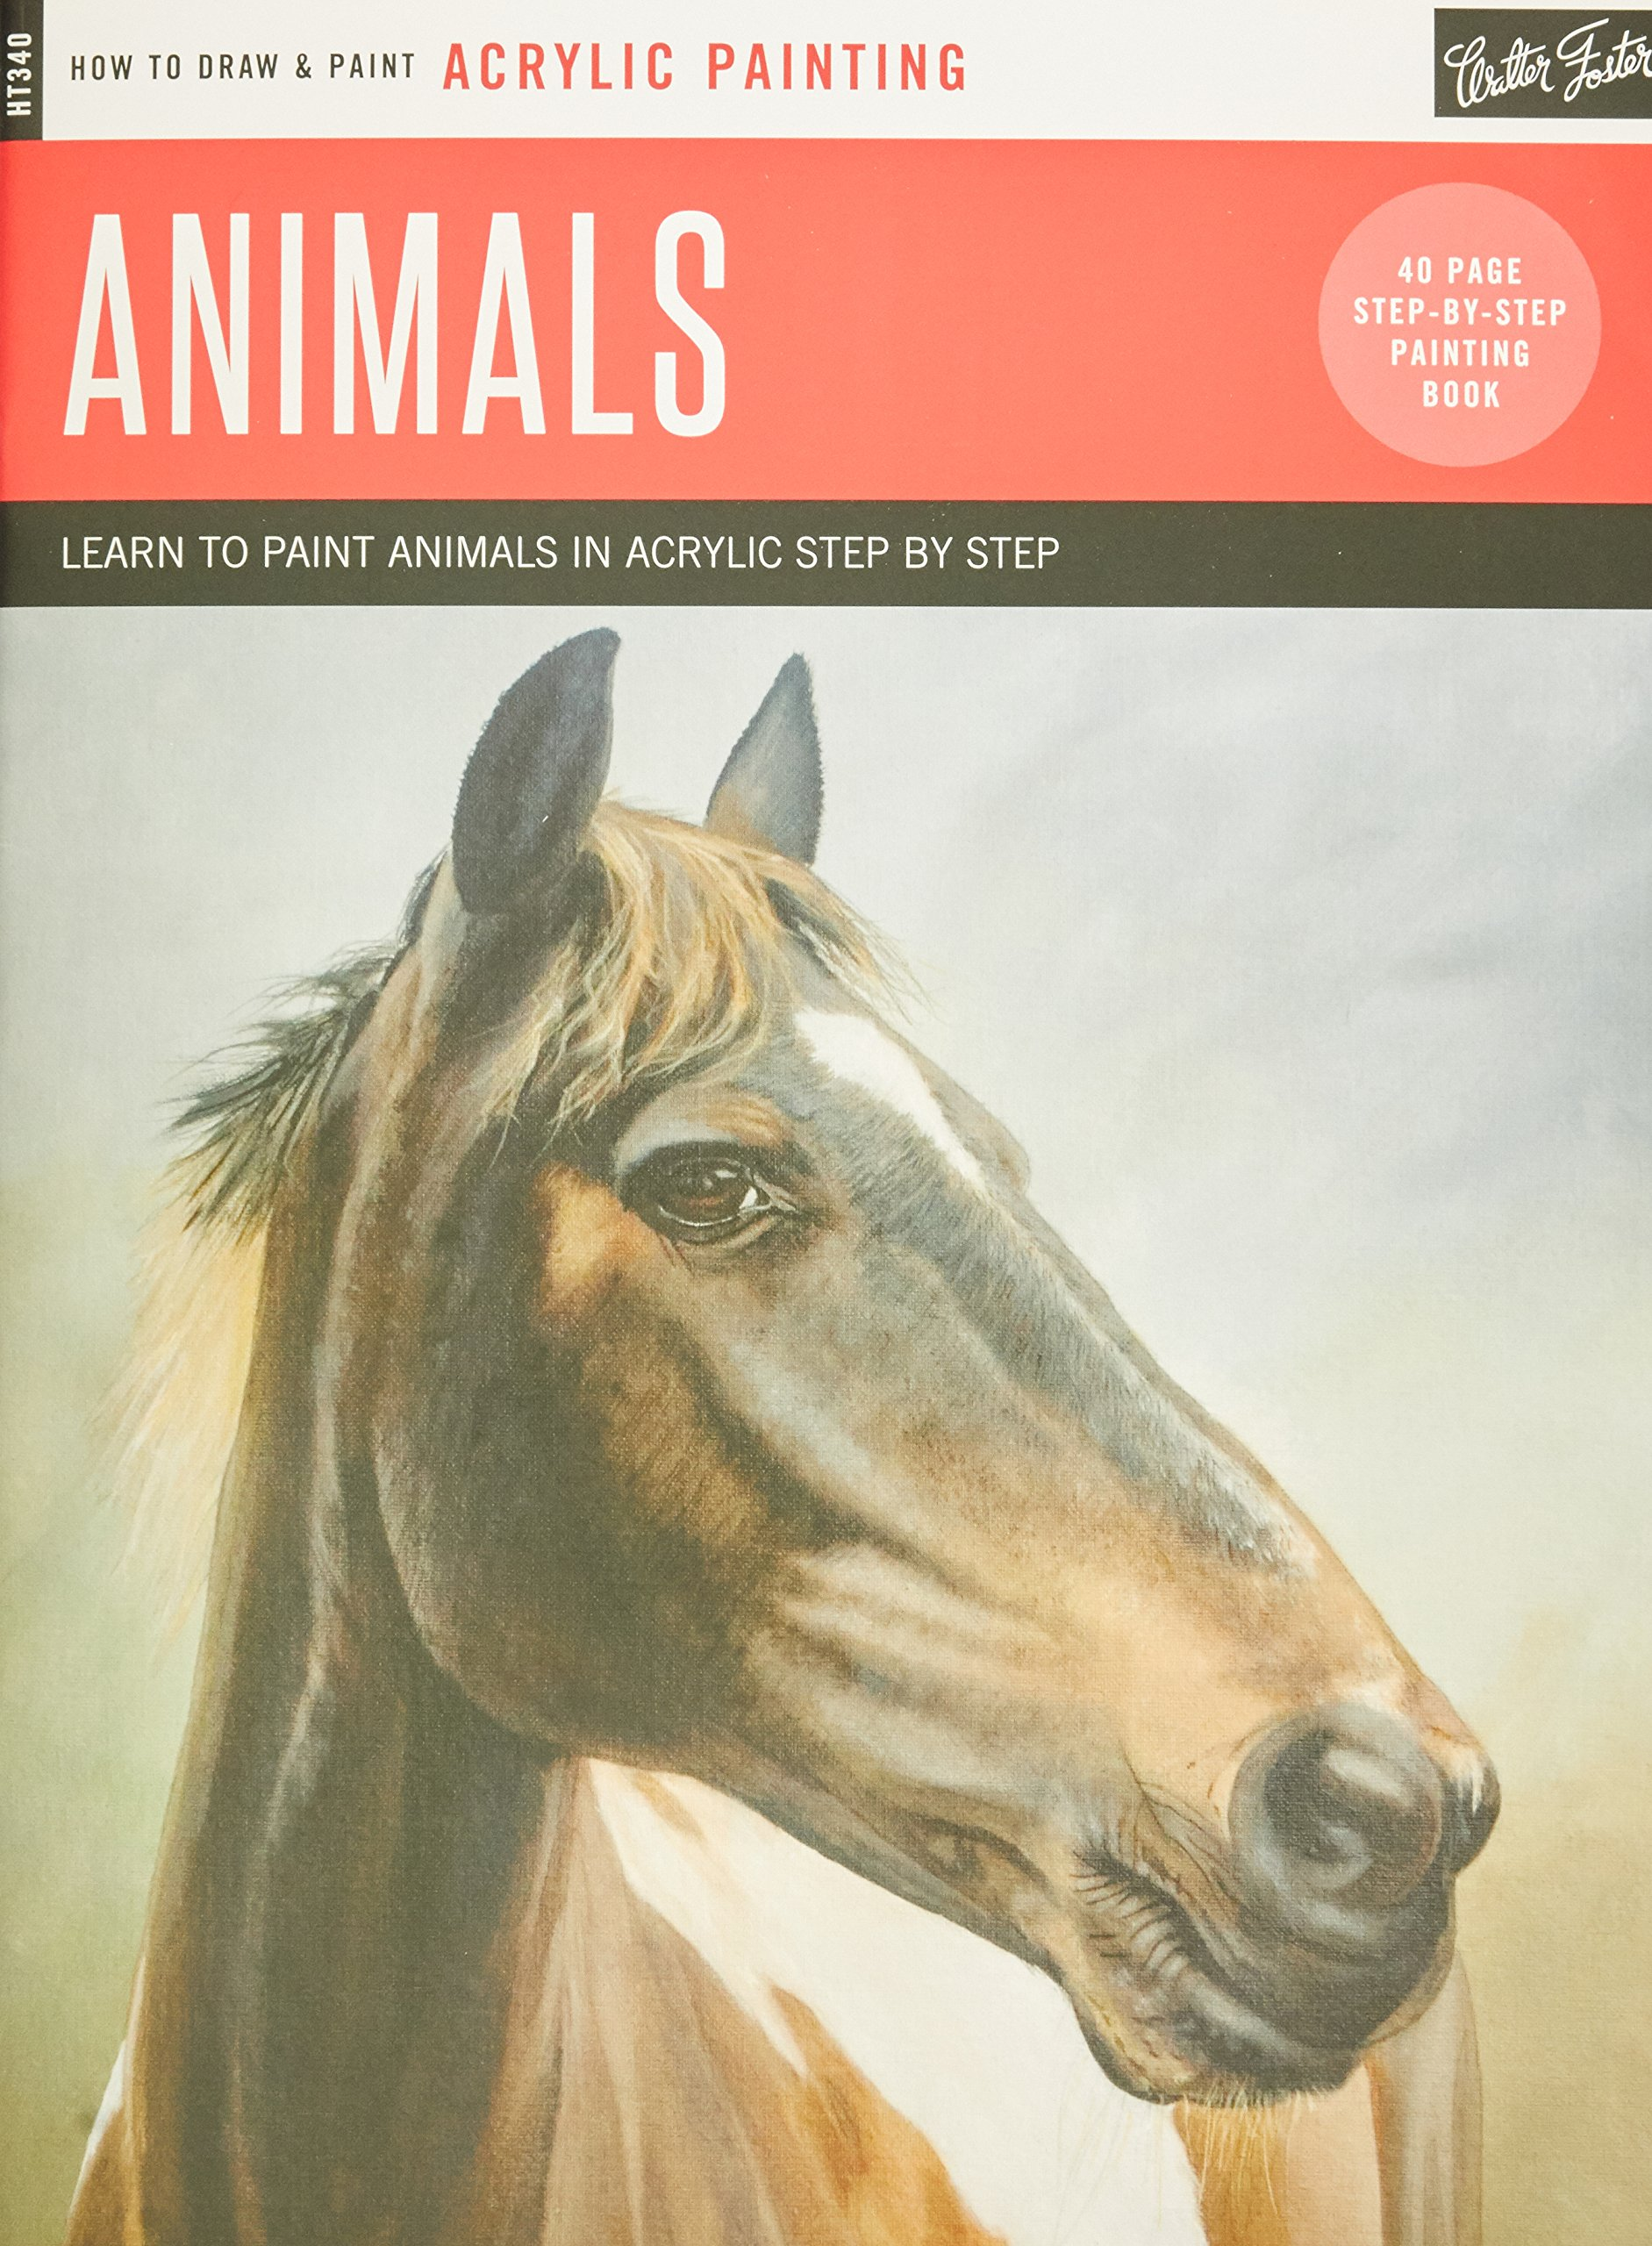 Acrylic: Animals: Learn to paint animals in acrylic step by step - 40 page step-by-step painting book (How to Draw & Paint)